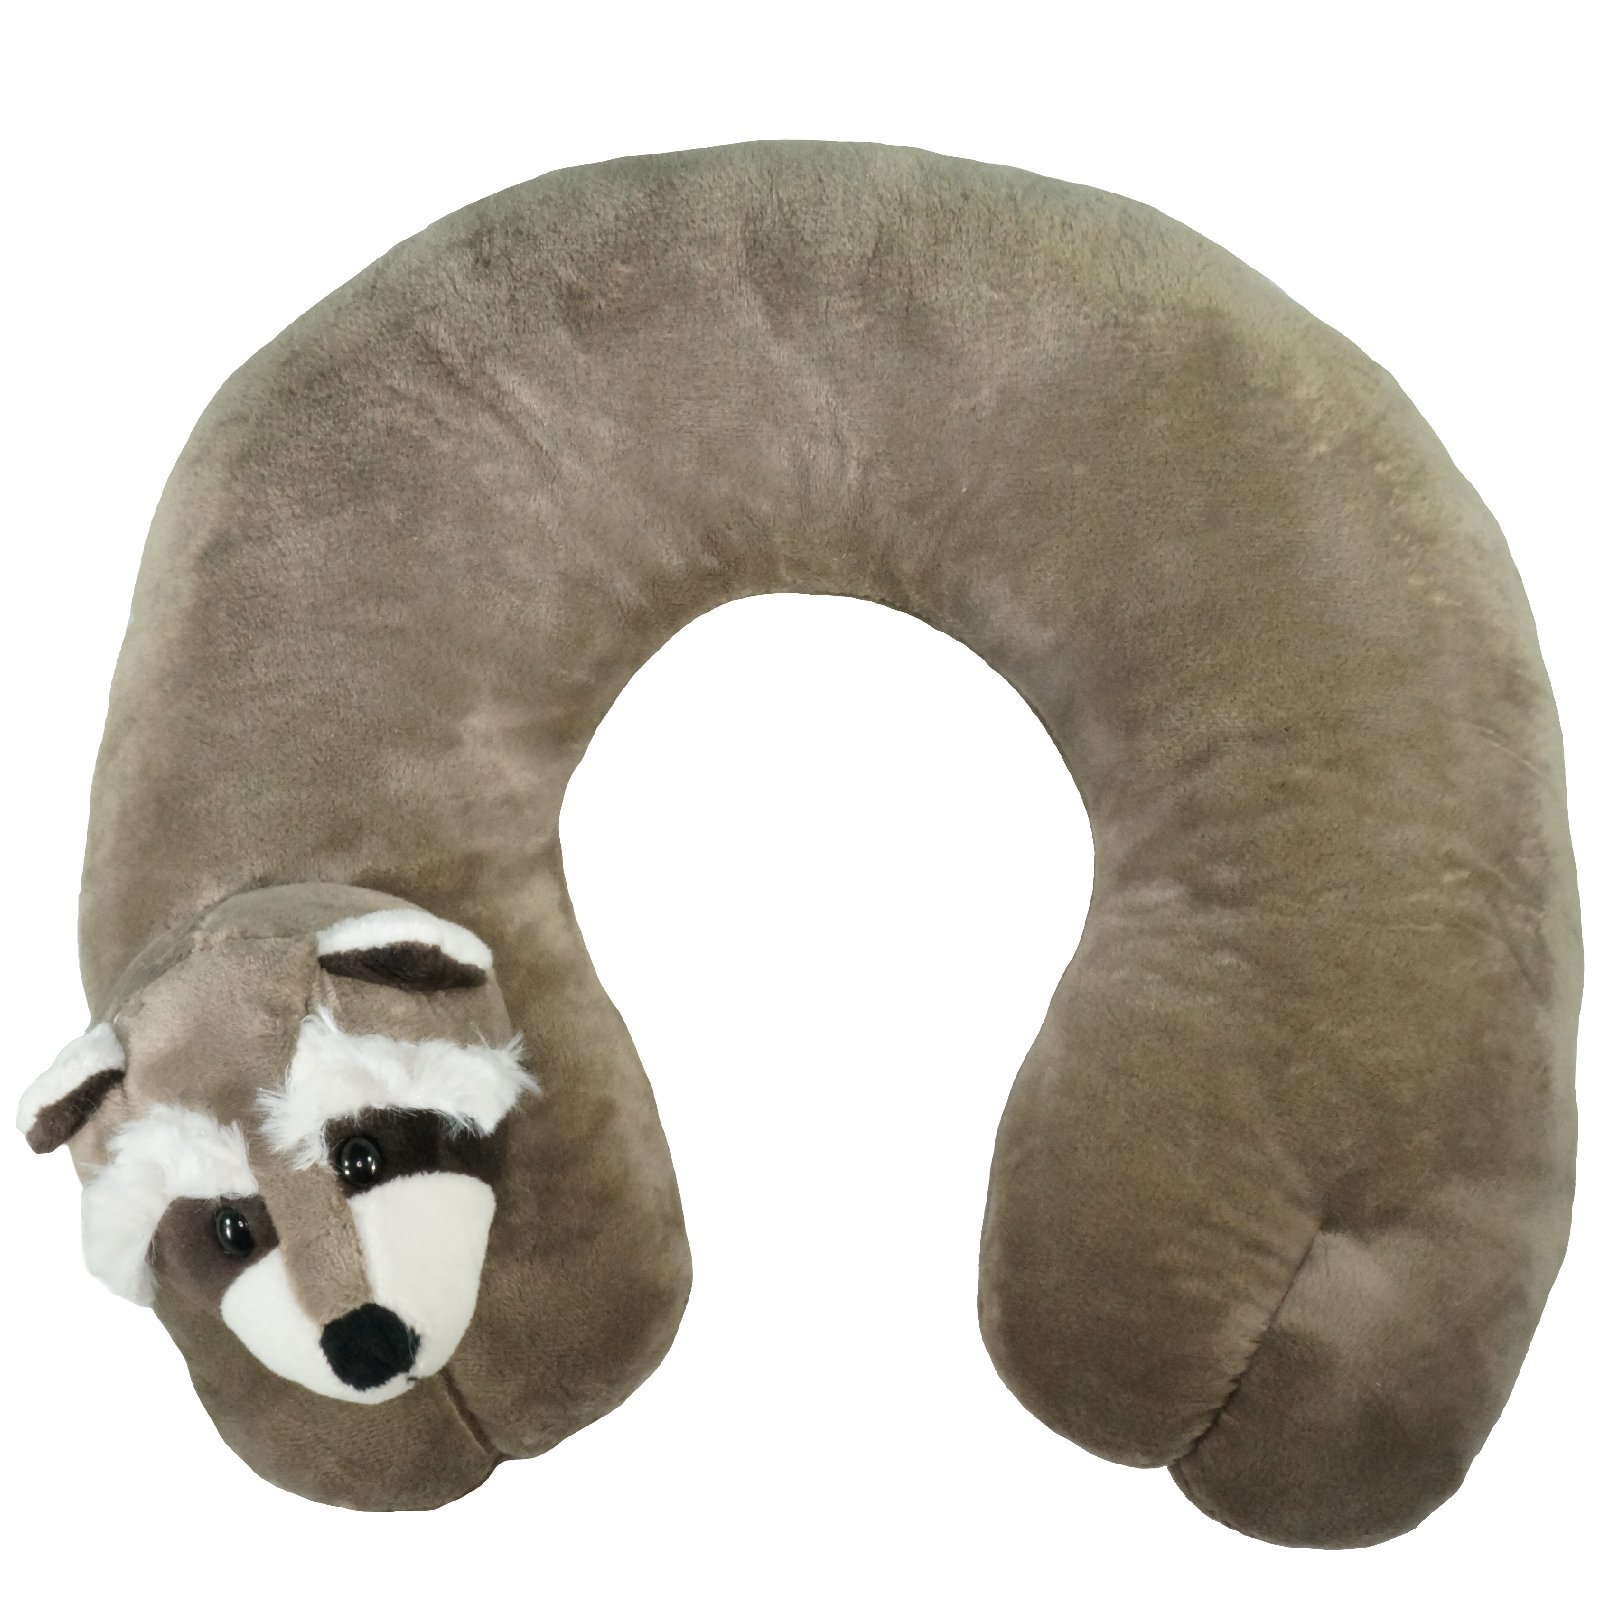 ComfoLUX Animal Neck Travel Pillow for Kids and Adults - Raccoon